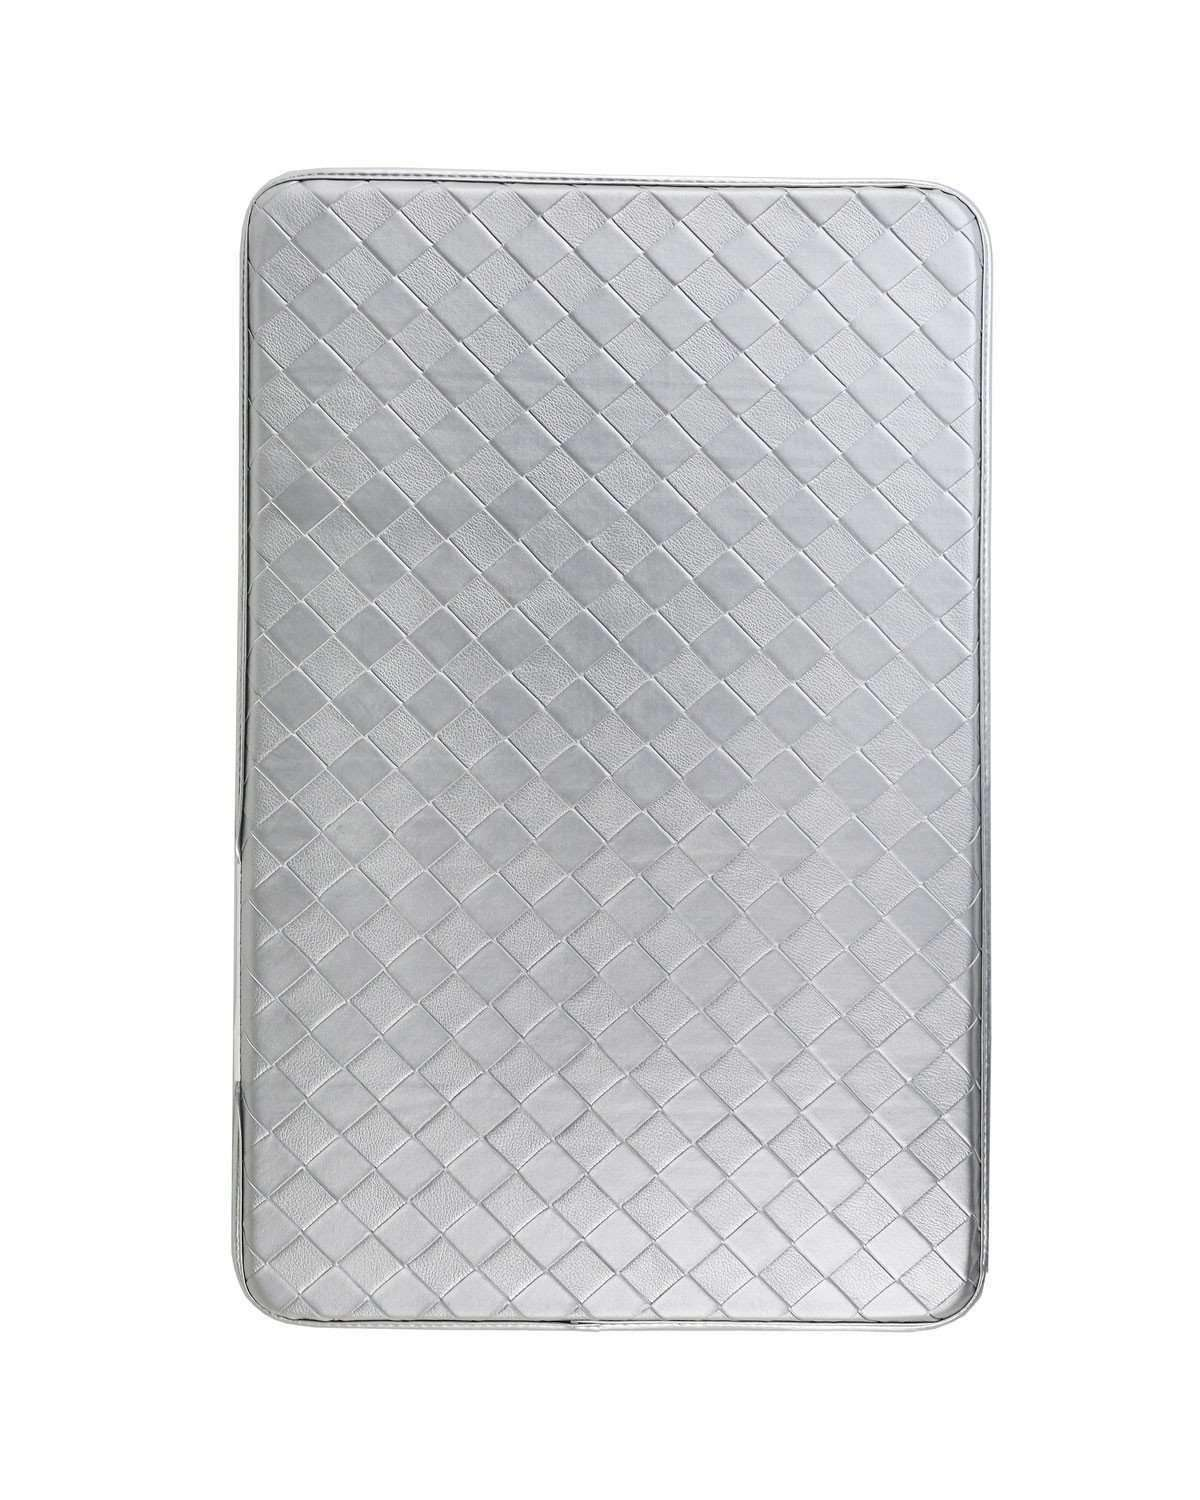 Spill Proof Anti Fatigue Memory Foam Kitchen Mat